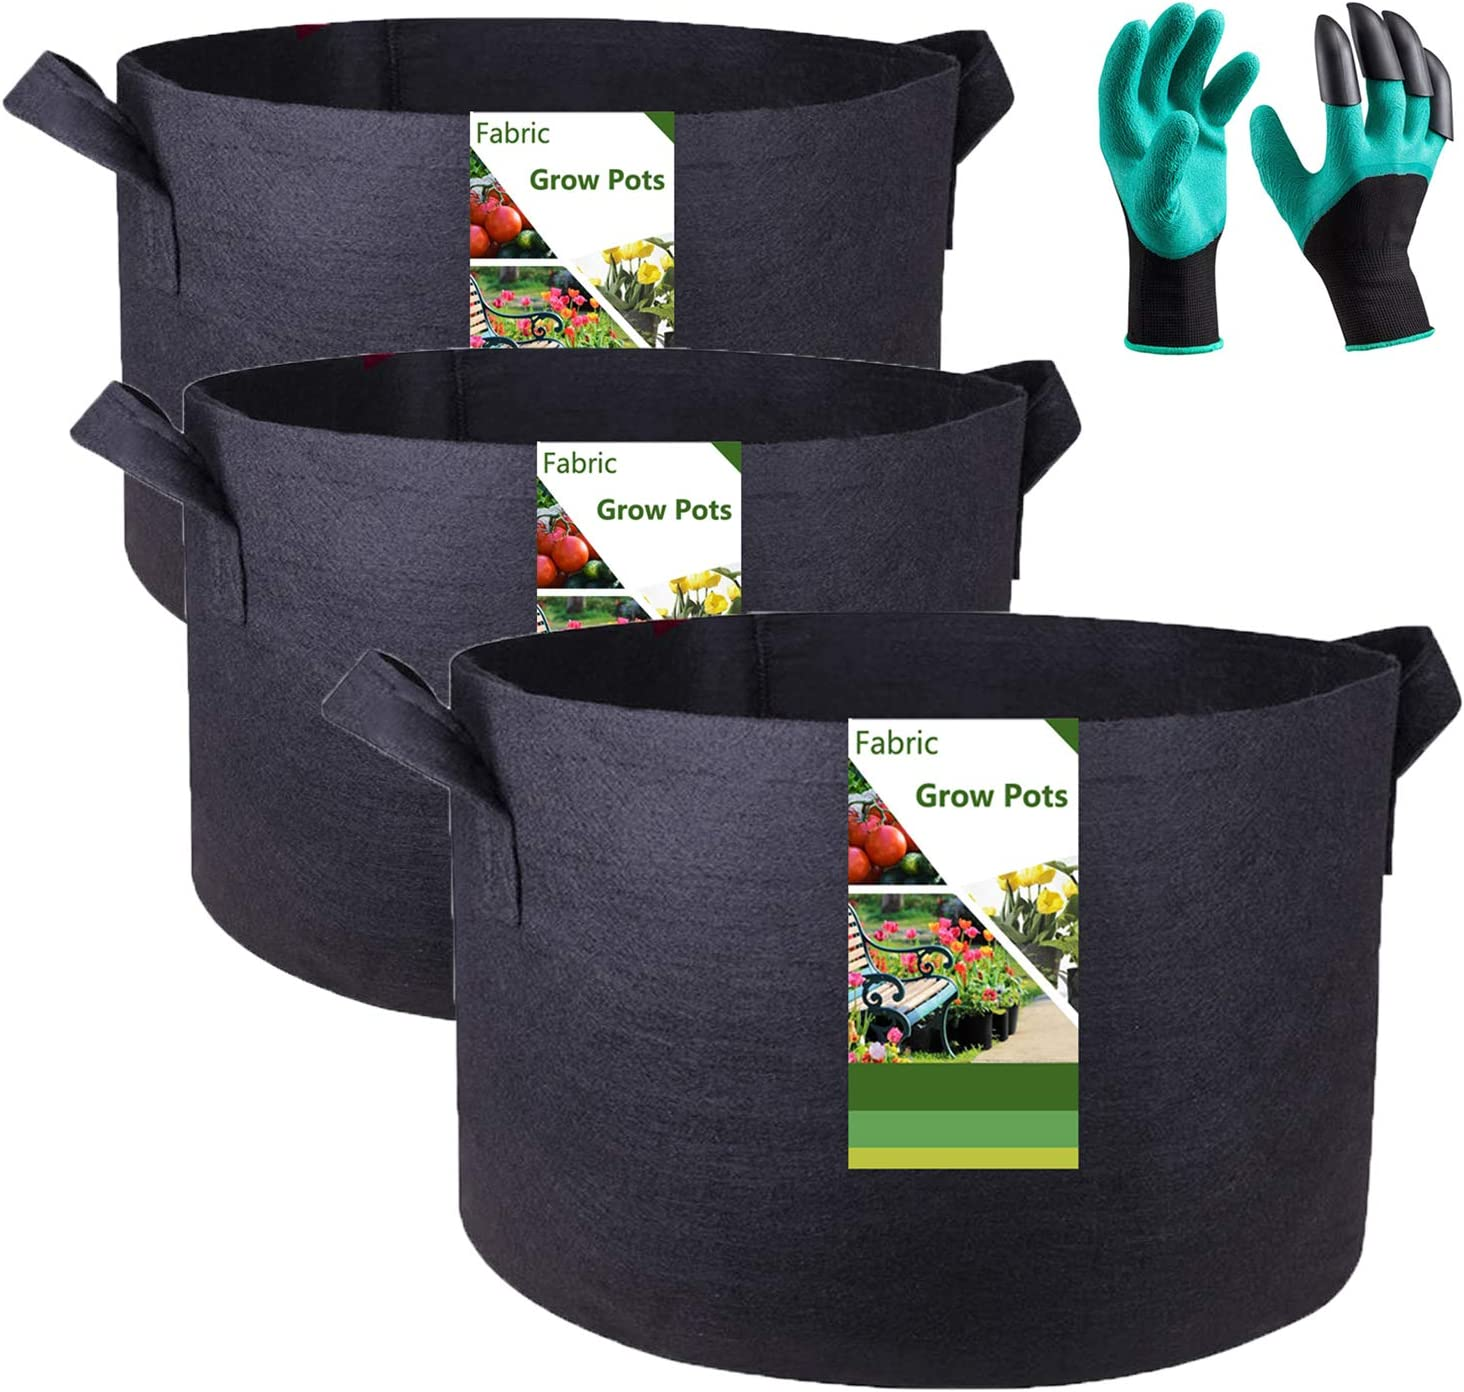 Tespher Professional 3-Pack 30 Gallon Round Fabric Pots Grow Bags (24x16 inches) with Coated Garden Gloves,Root Aeration Containers Plant Bags Flower Pouch Vegetable Container Planters